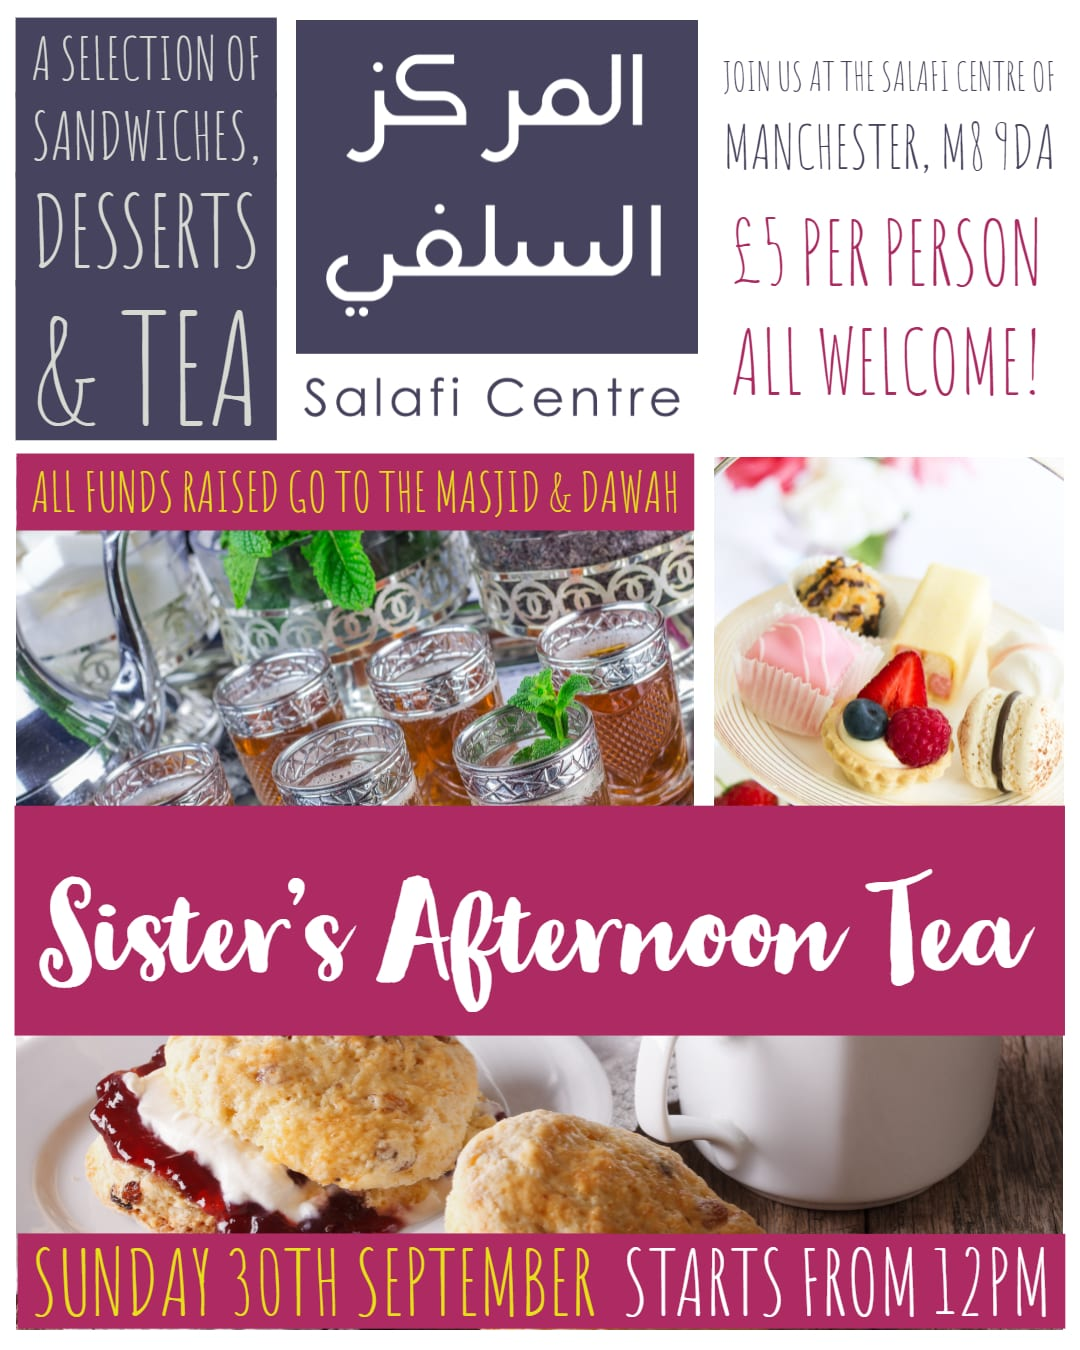 Sister's Afternoon Tea – Sunday 30th September from 12pm!